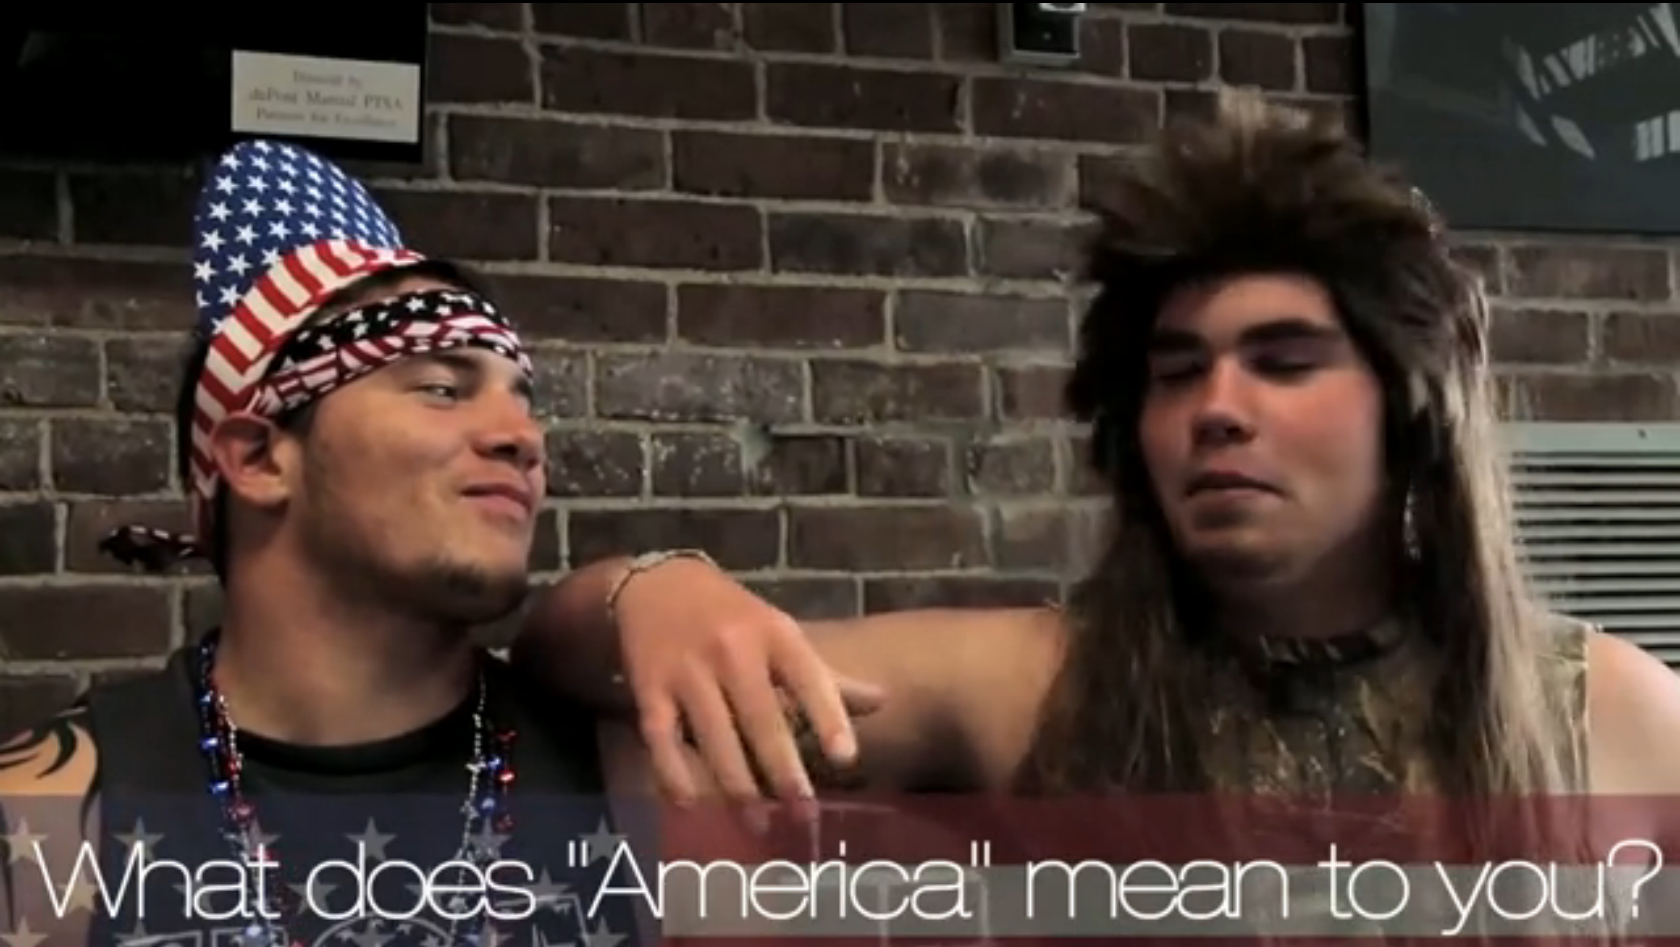 VIDEO: America VS. 'Murrica